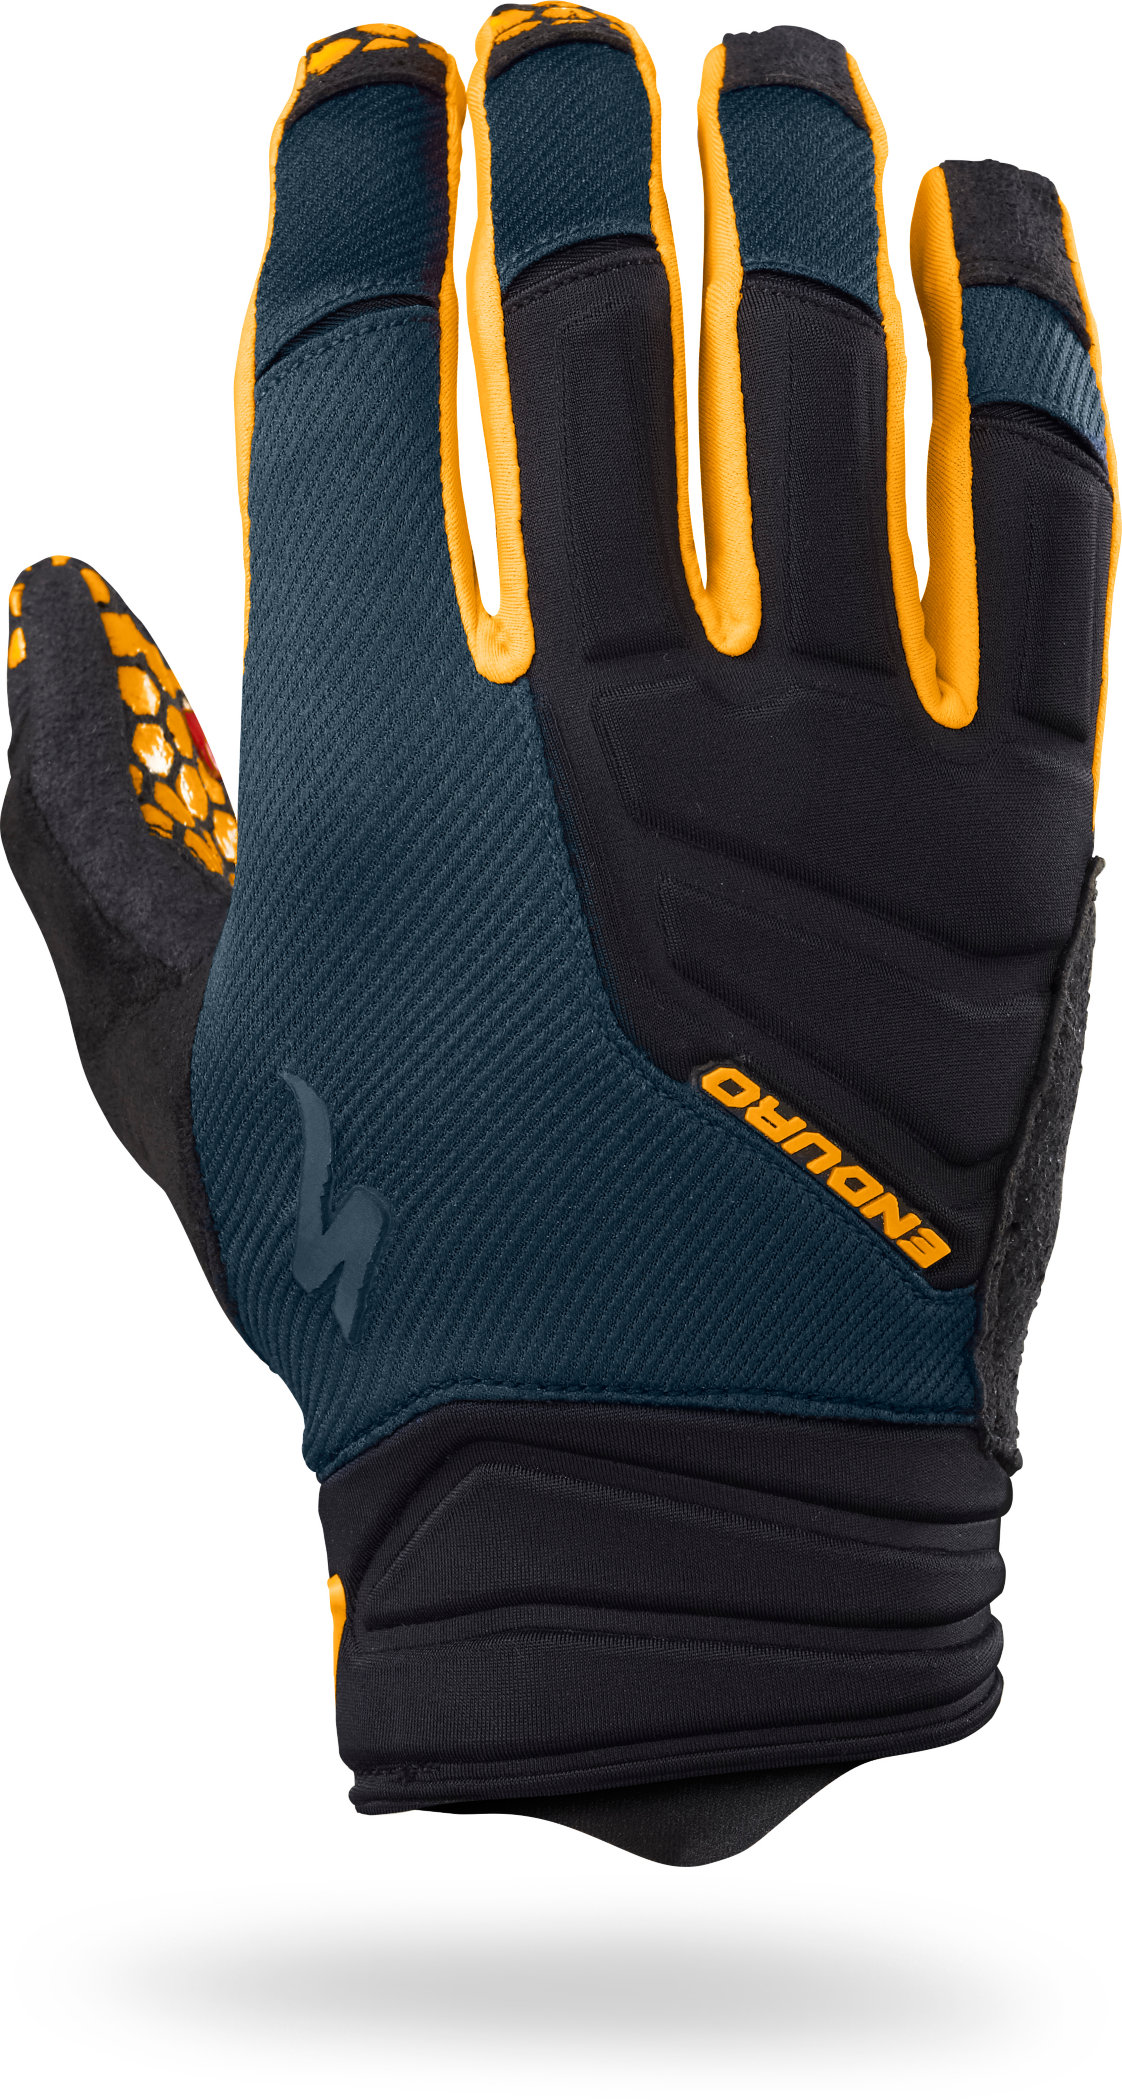 SPECIALIZED ENDURO GLOVE LF NVY/GLDORG L - Bikedreams & Dustbikes